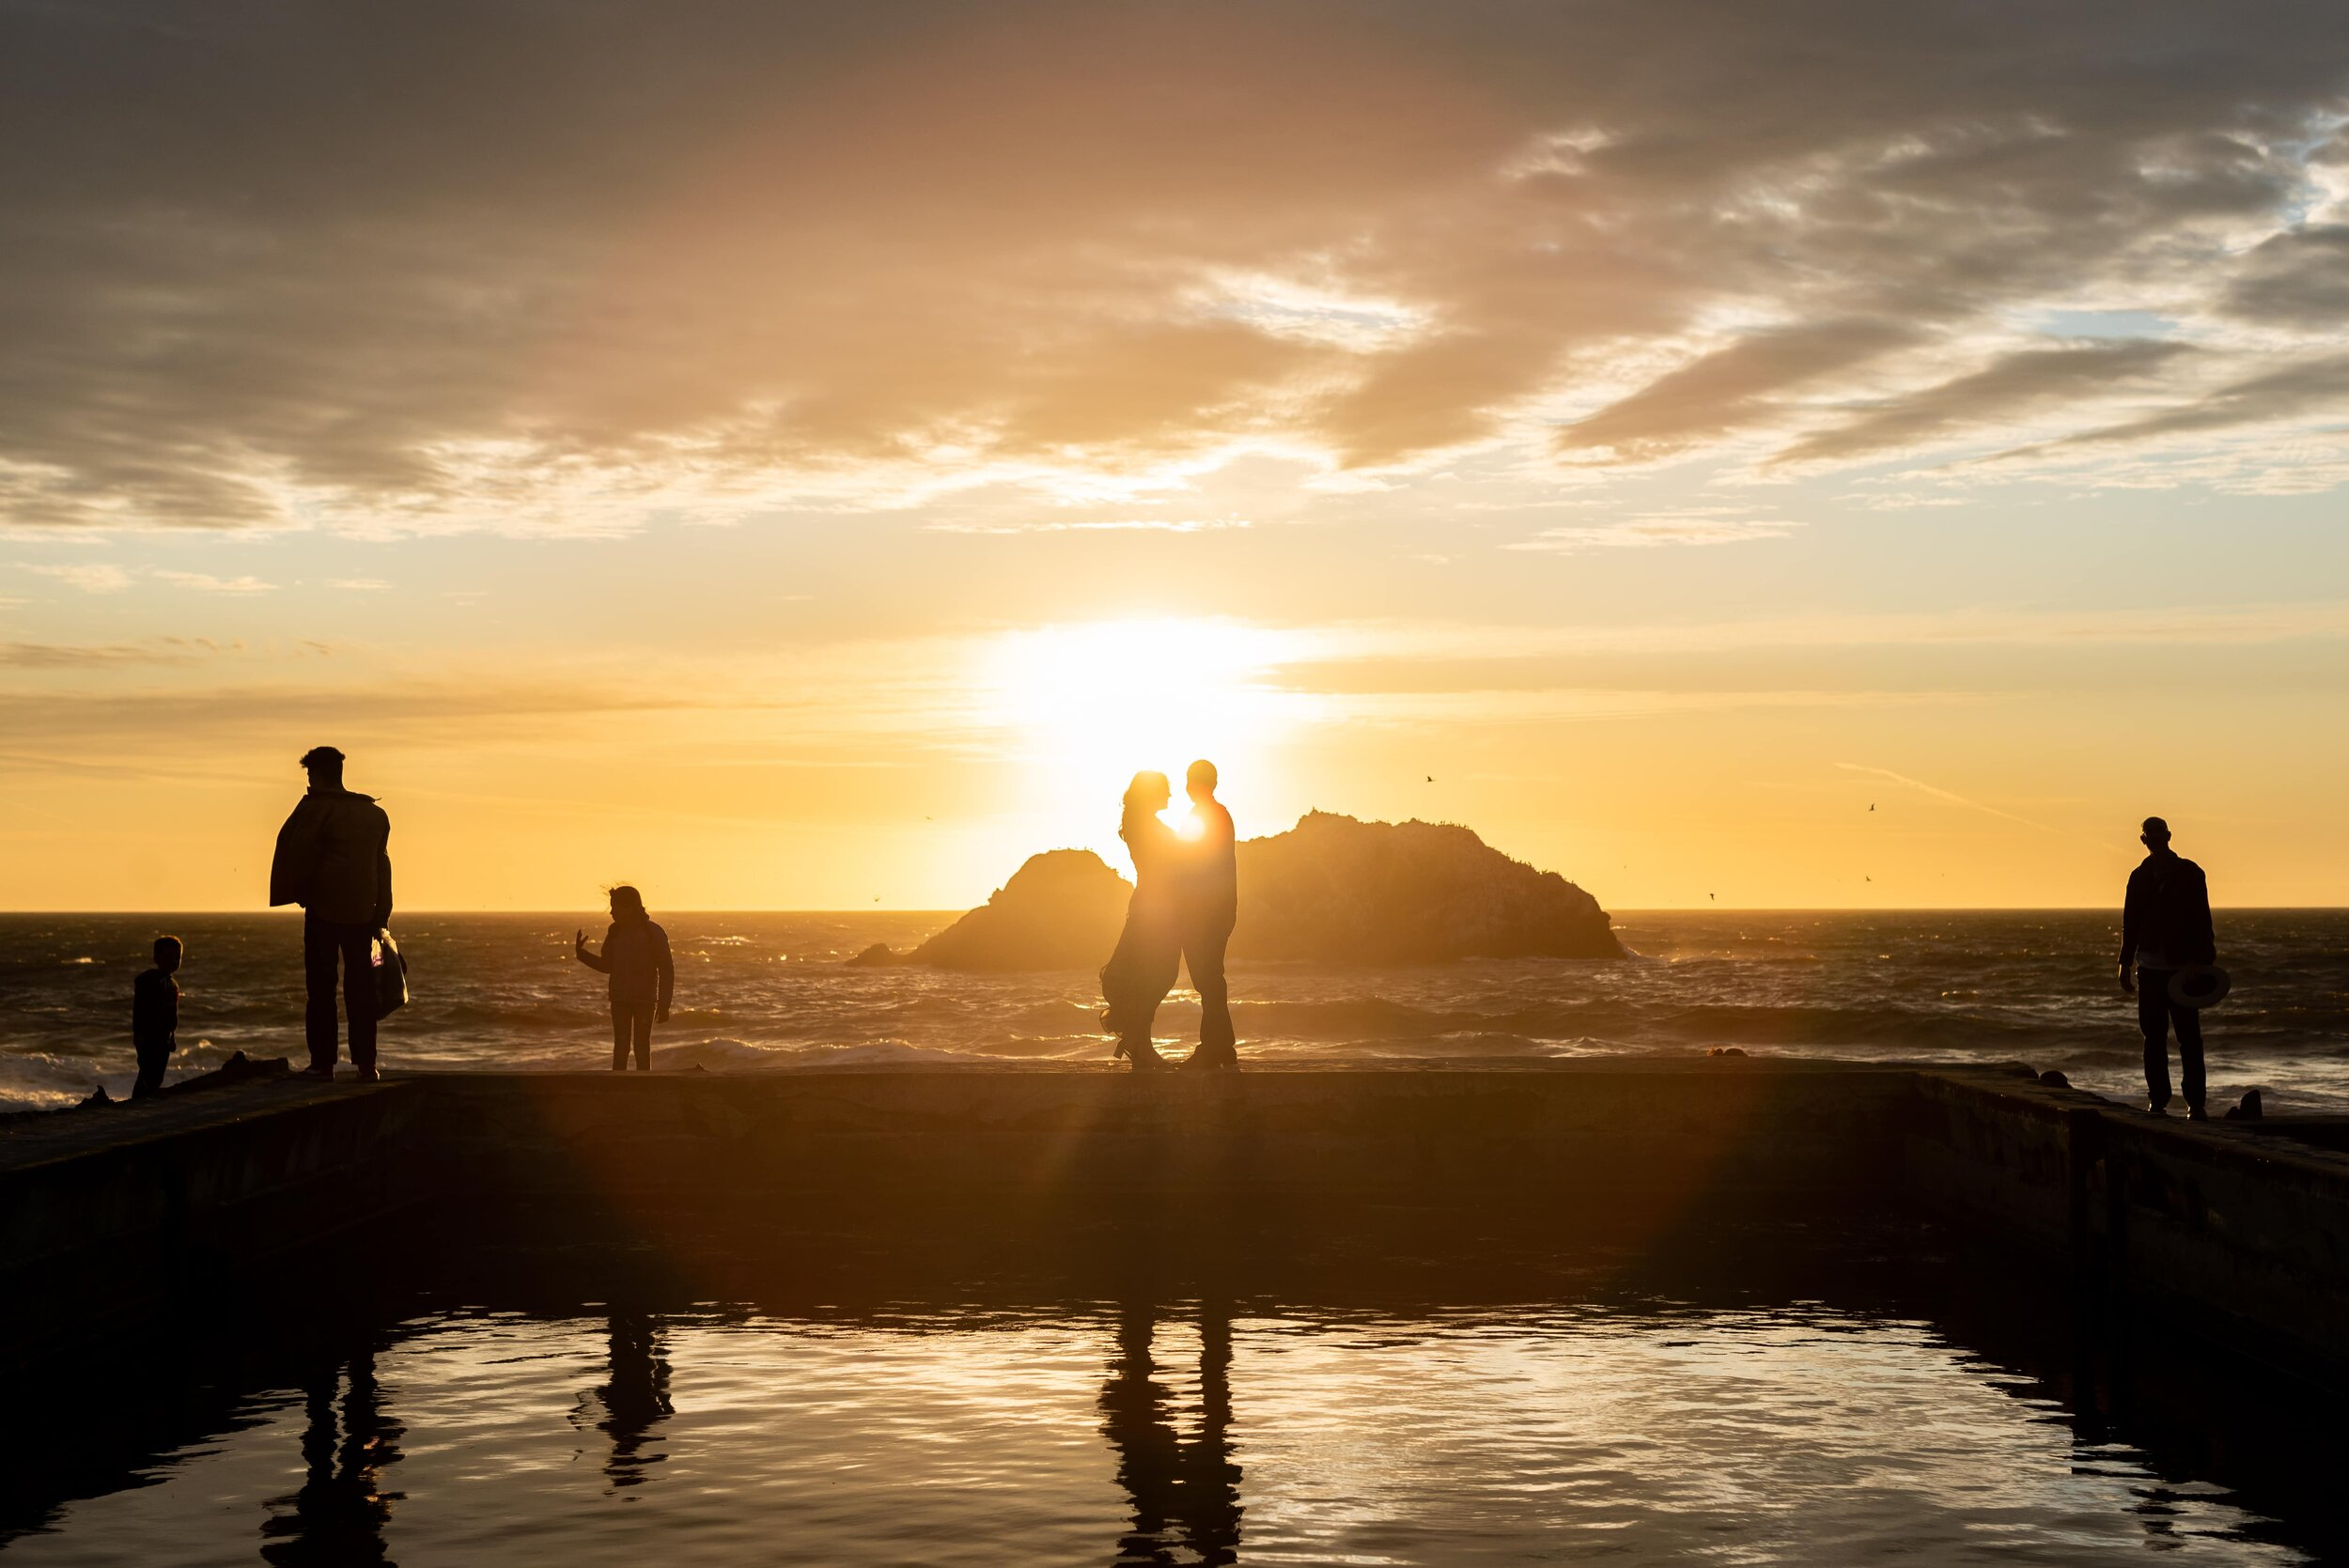 Silhouette of couple and people at sunset at Sutro Baths